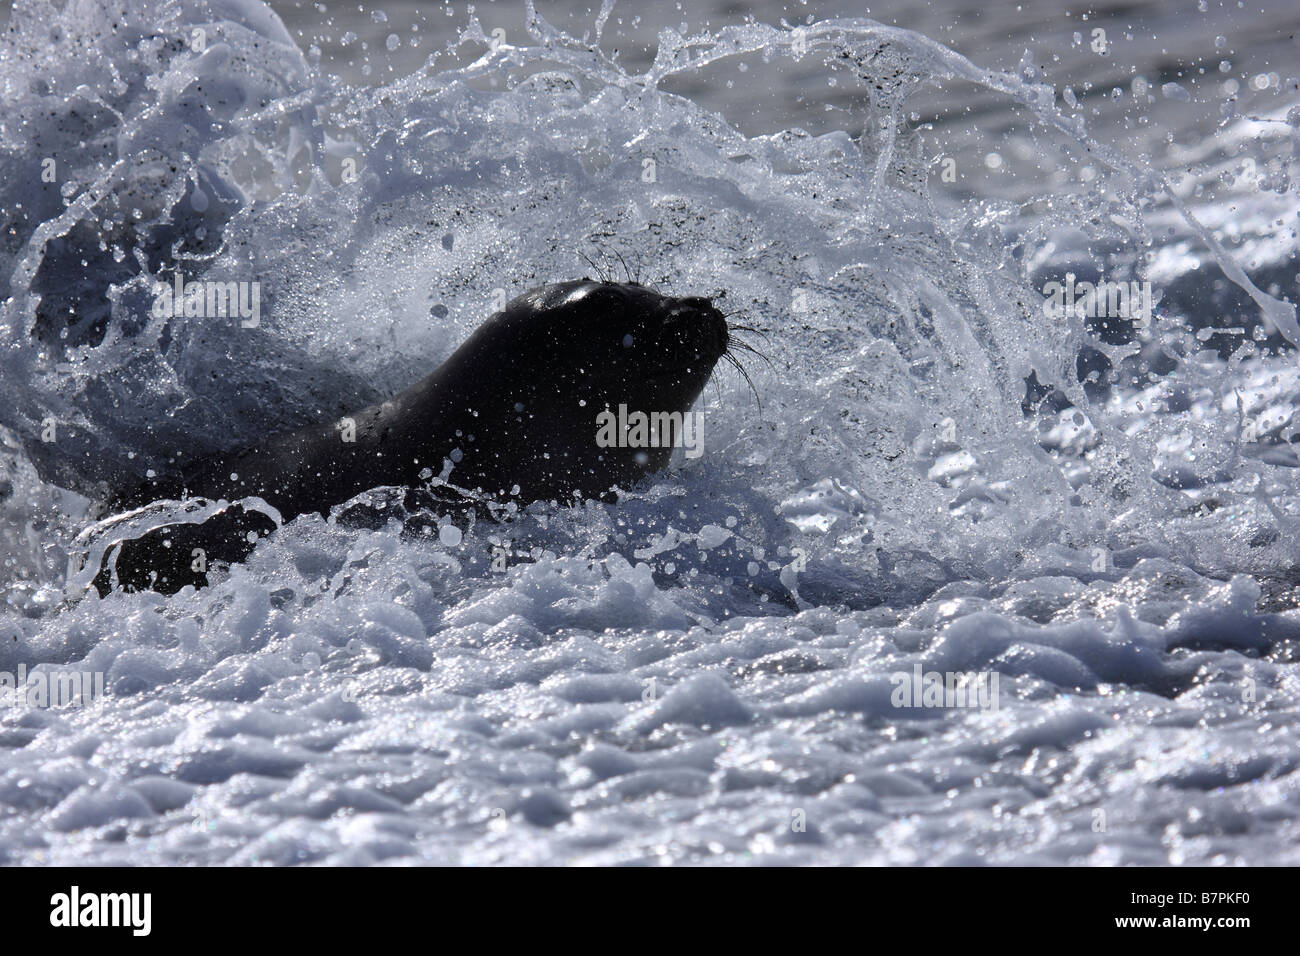 Fur Seal comes ashore in the surf and spume at Gold Harbour South Georgia - Stock Image